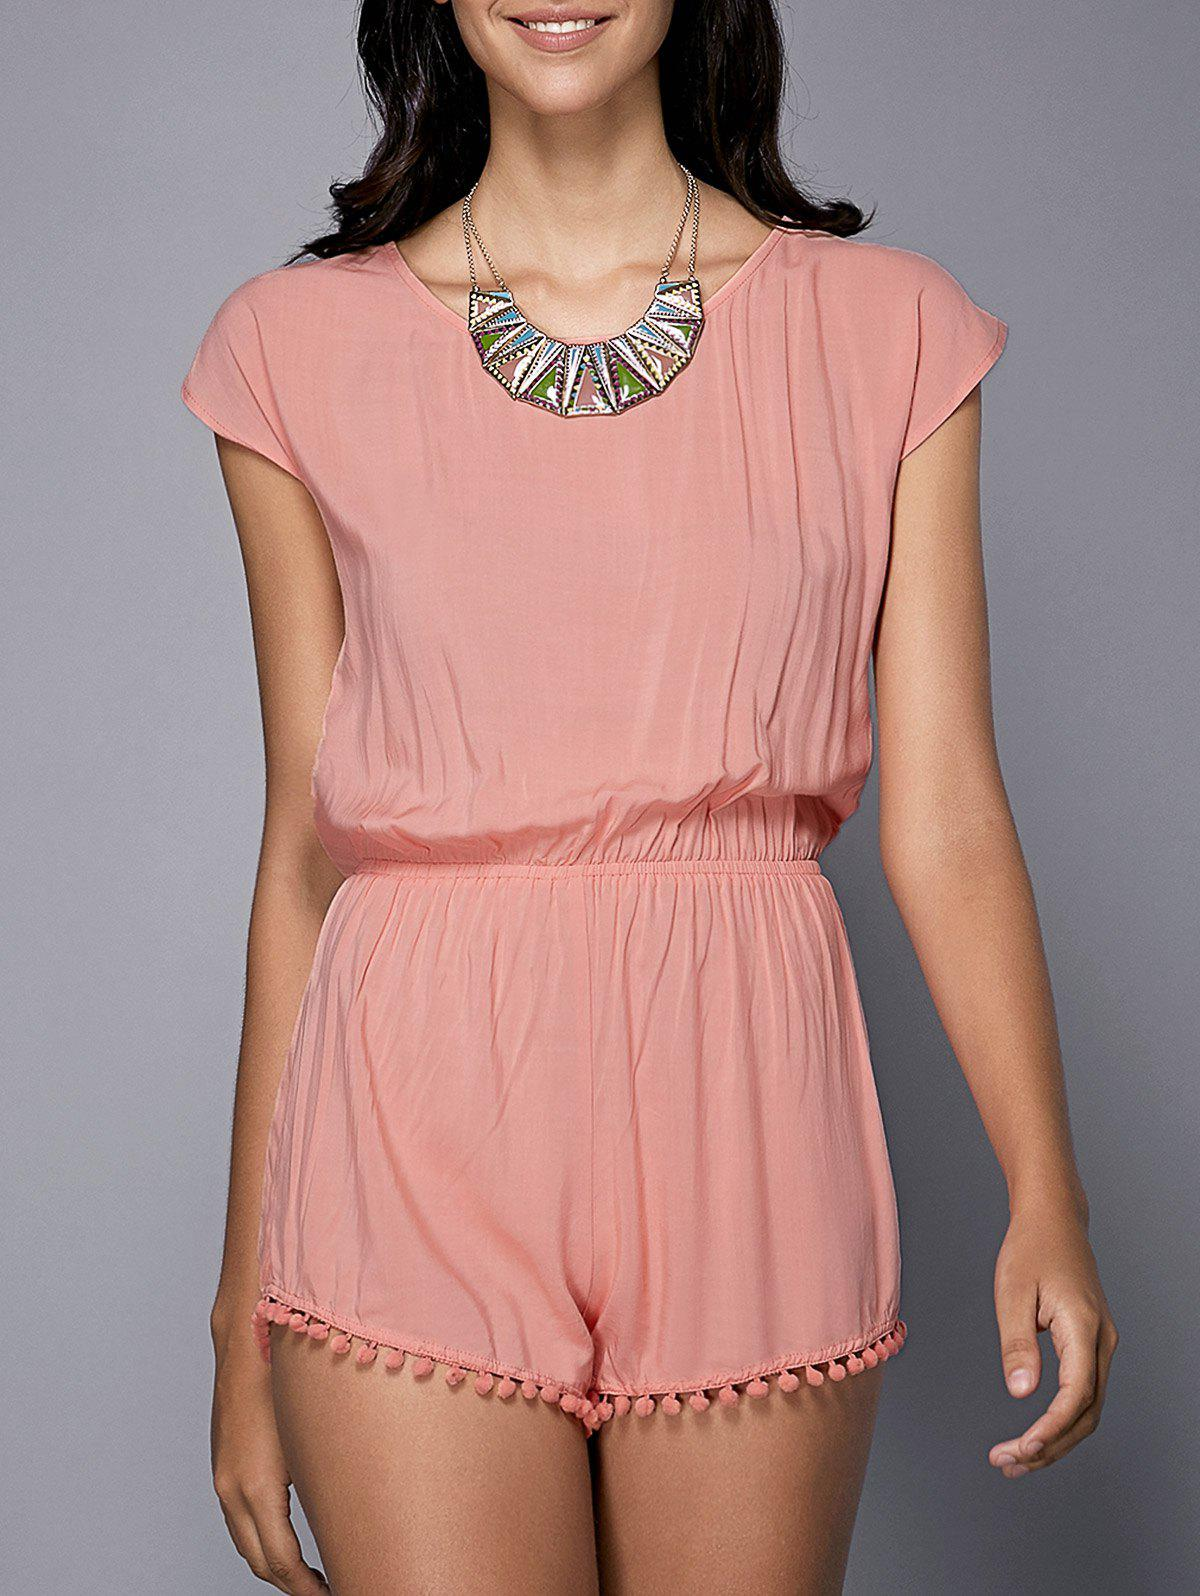 Stylish Women's Short Sleeve Scoop Neck Self-Tie Romper - PINK S